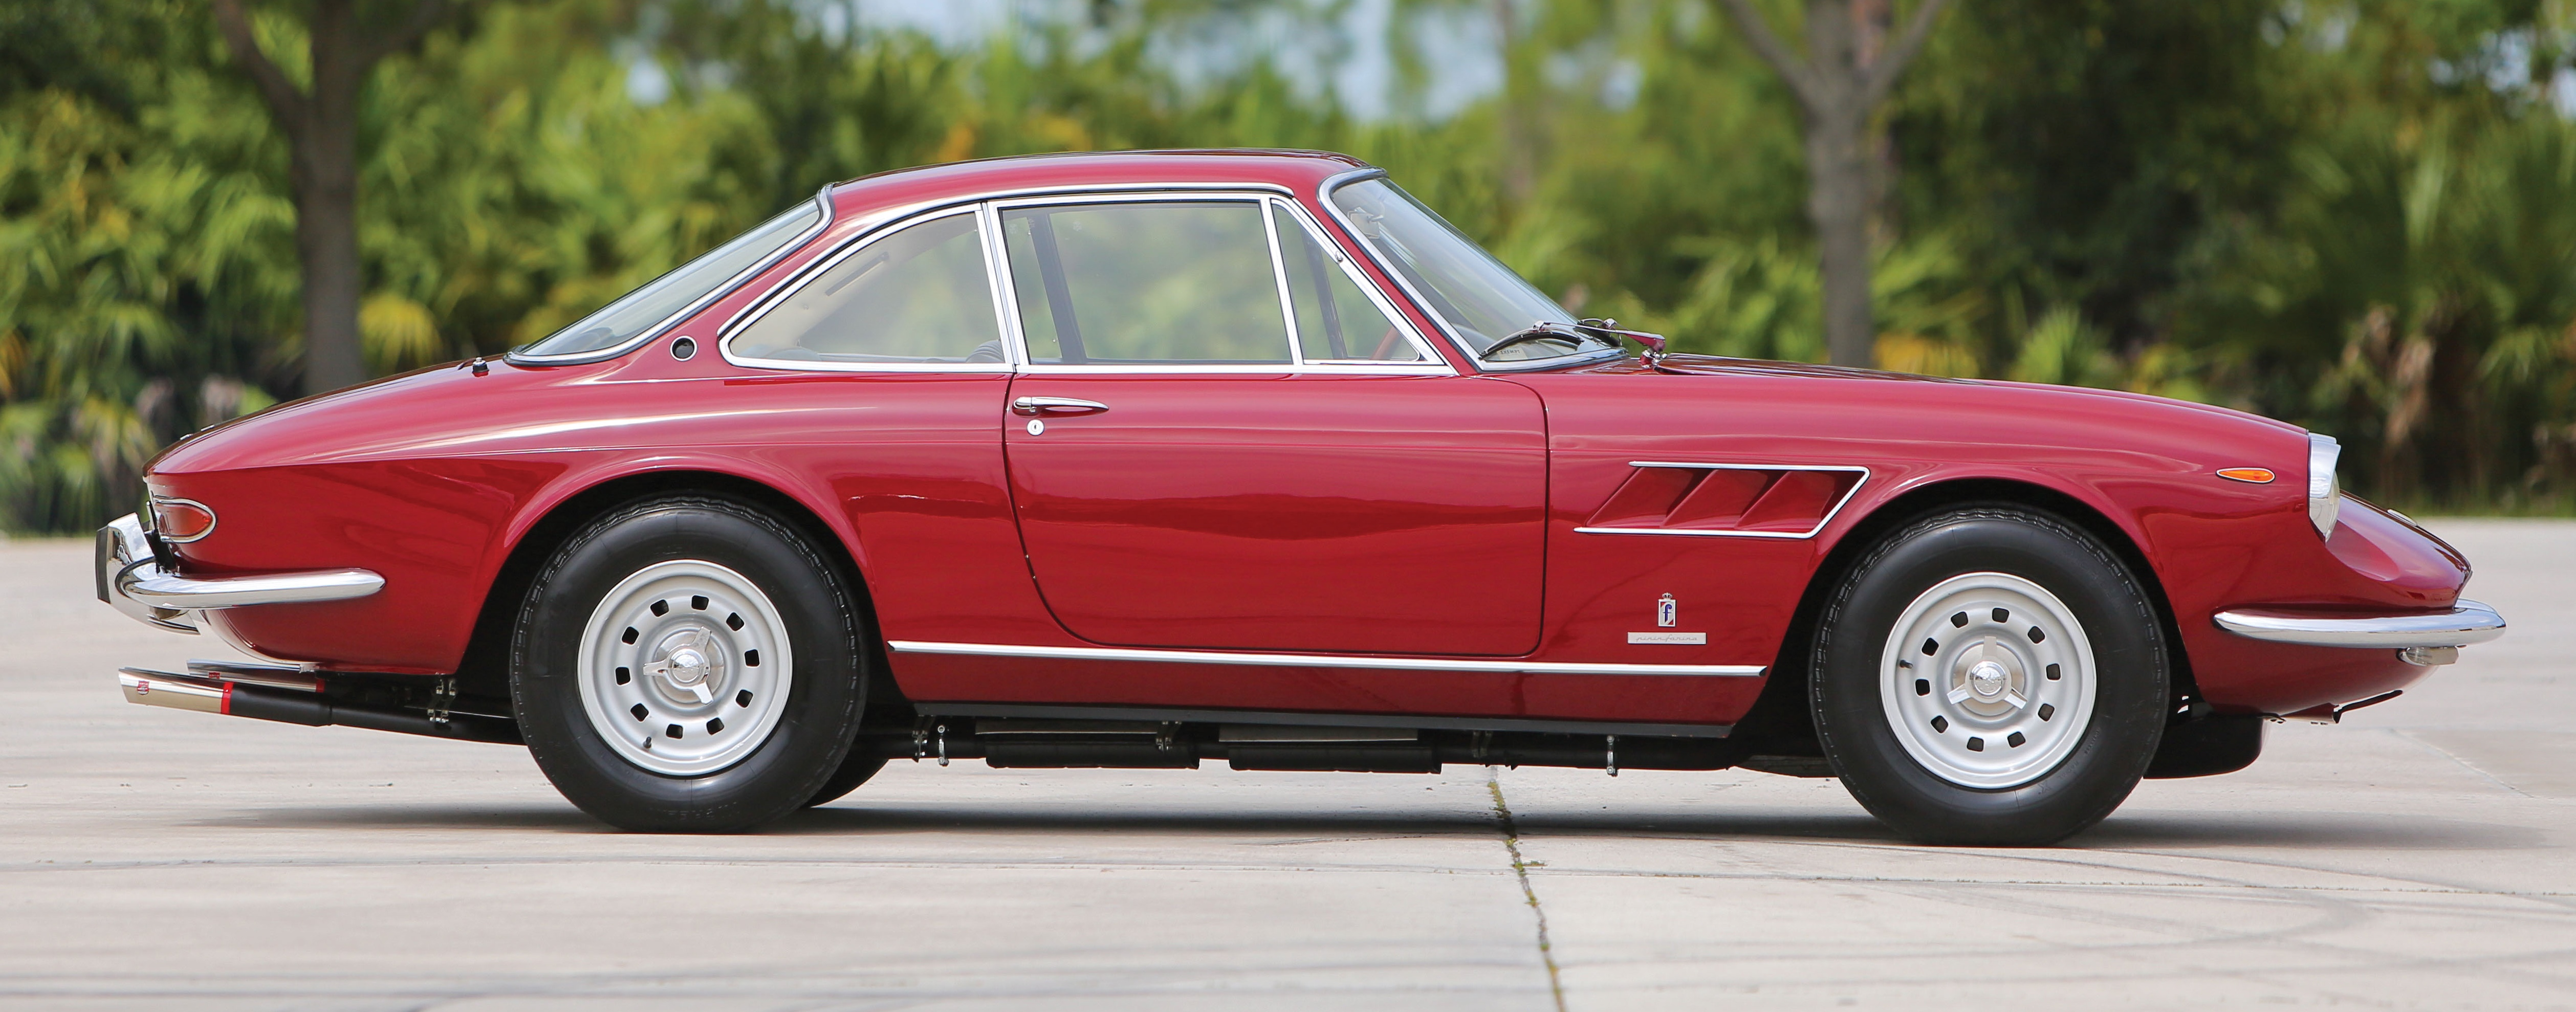 1967 Ferrari 330 GTC among special treats crossing the block at Hilton Head Island | Auctions America photo by Ryan Merrill